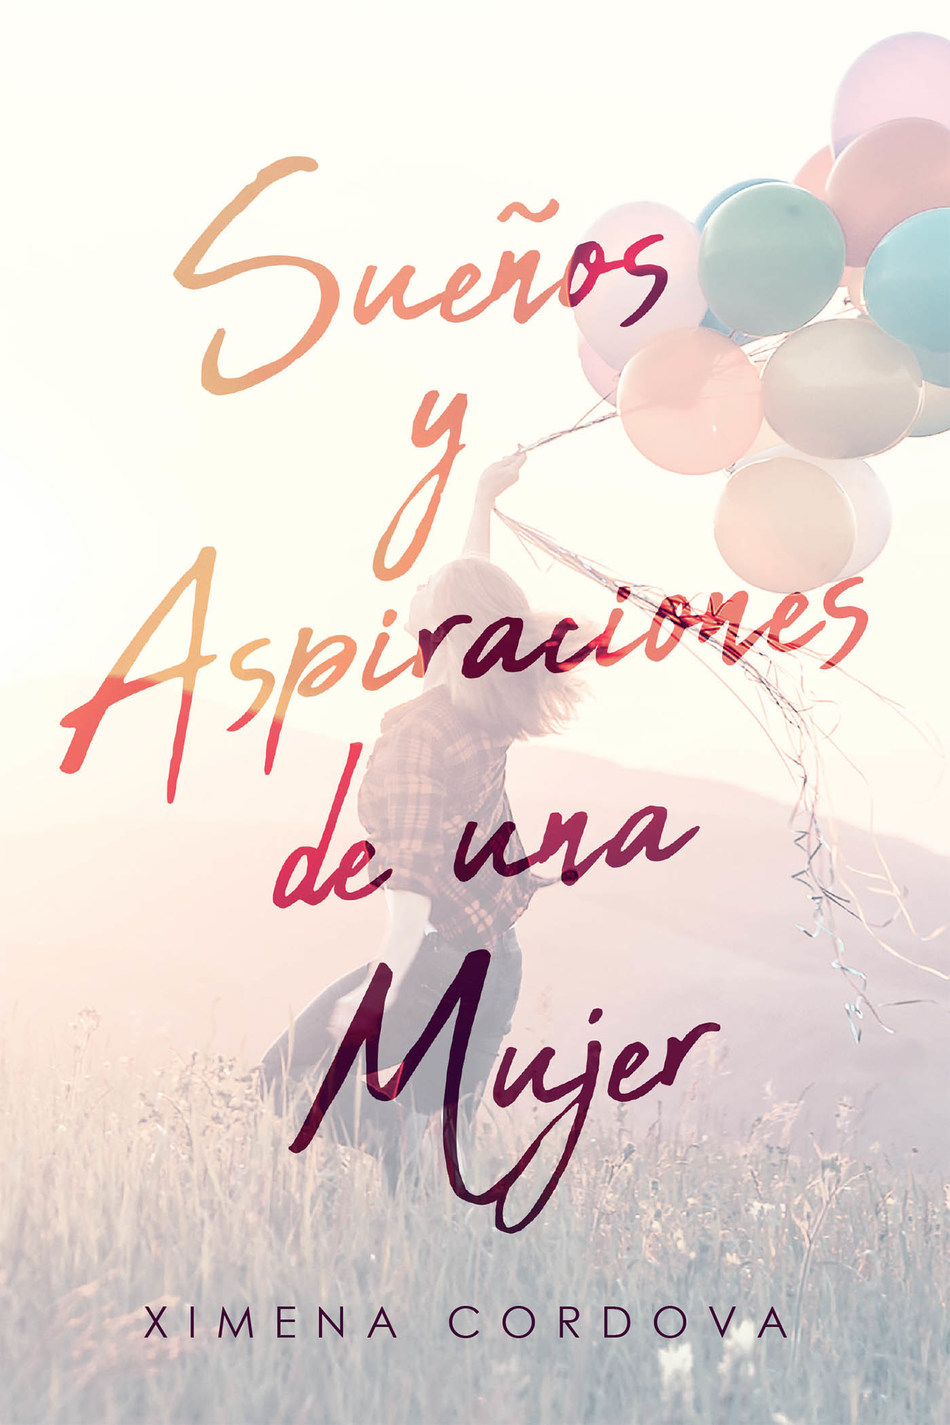 Page_Publishing_Ximena_Cordova_Book